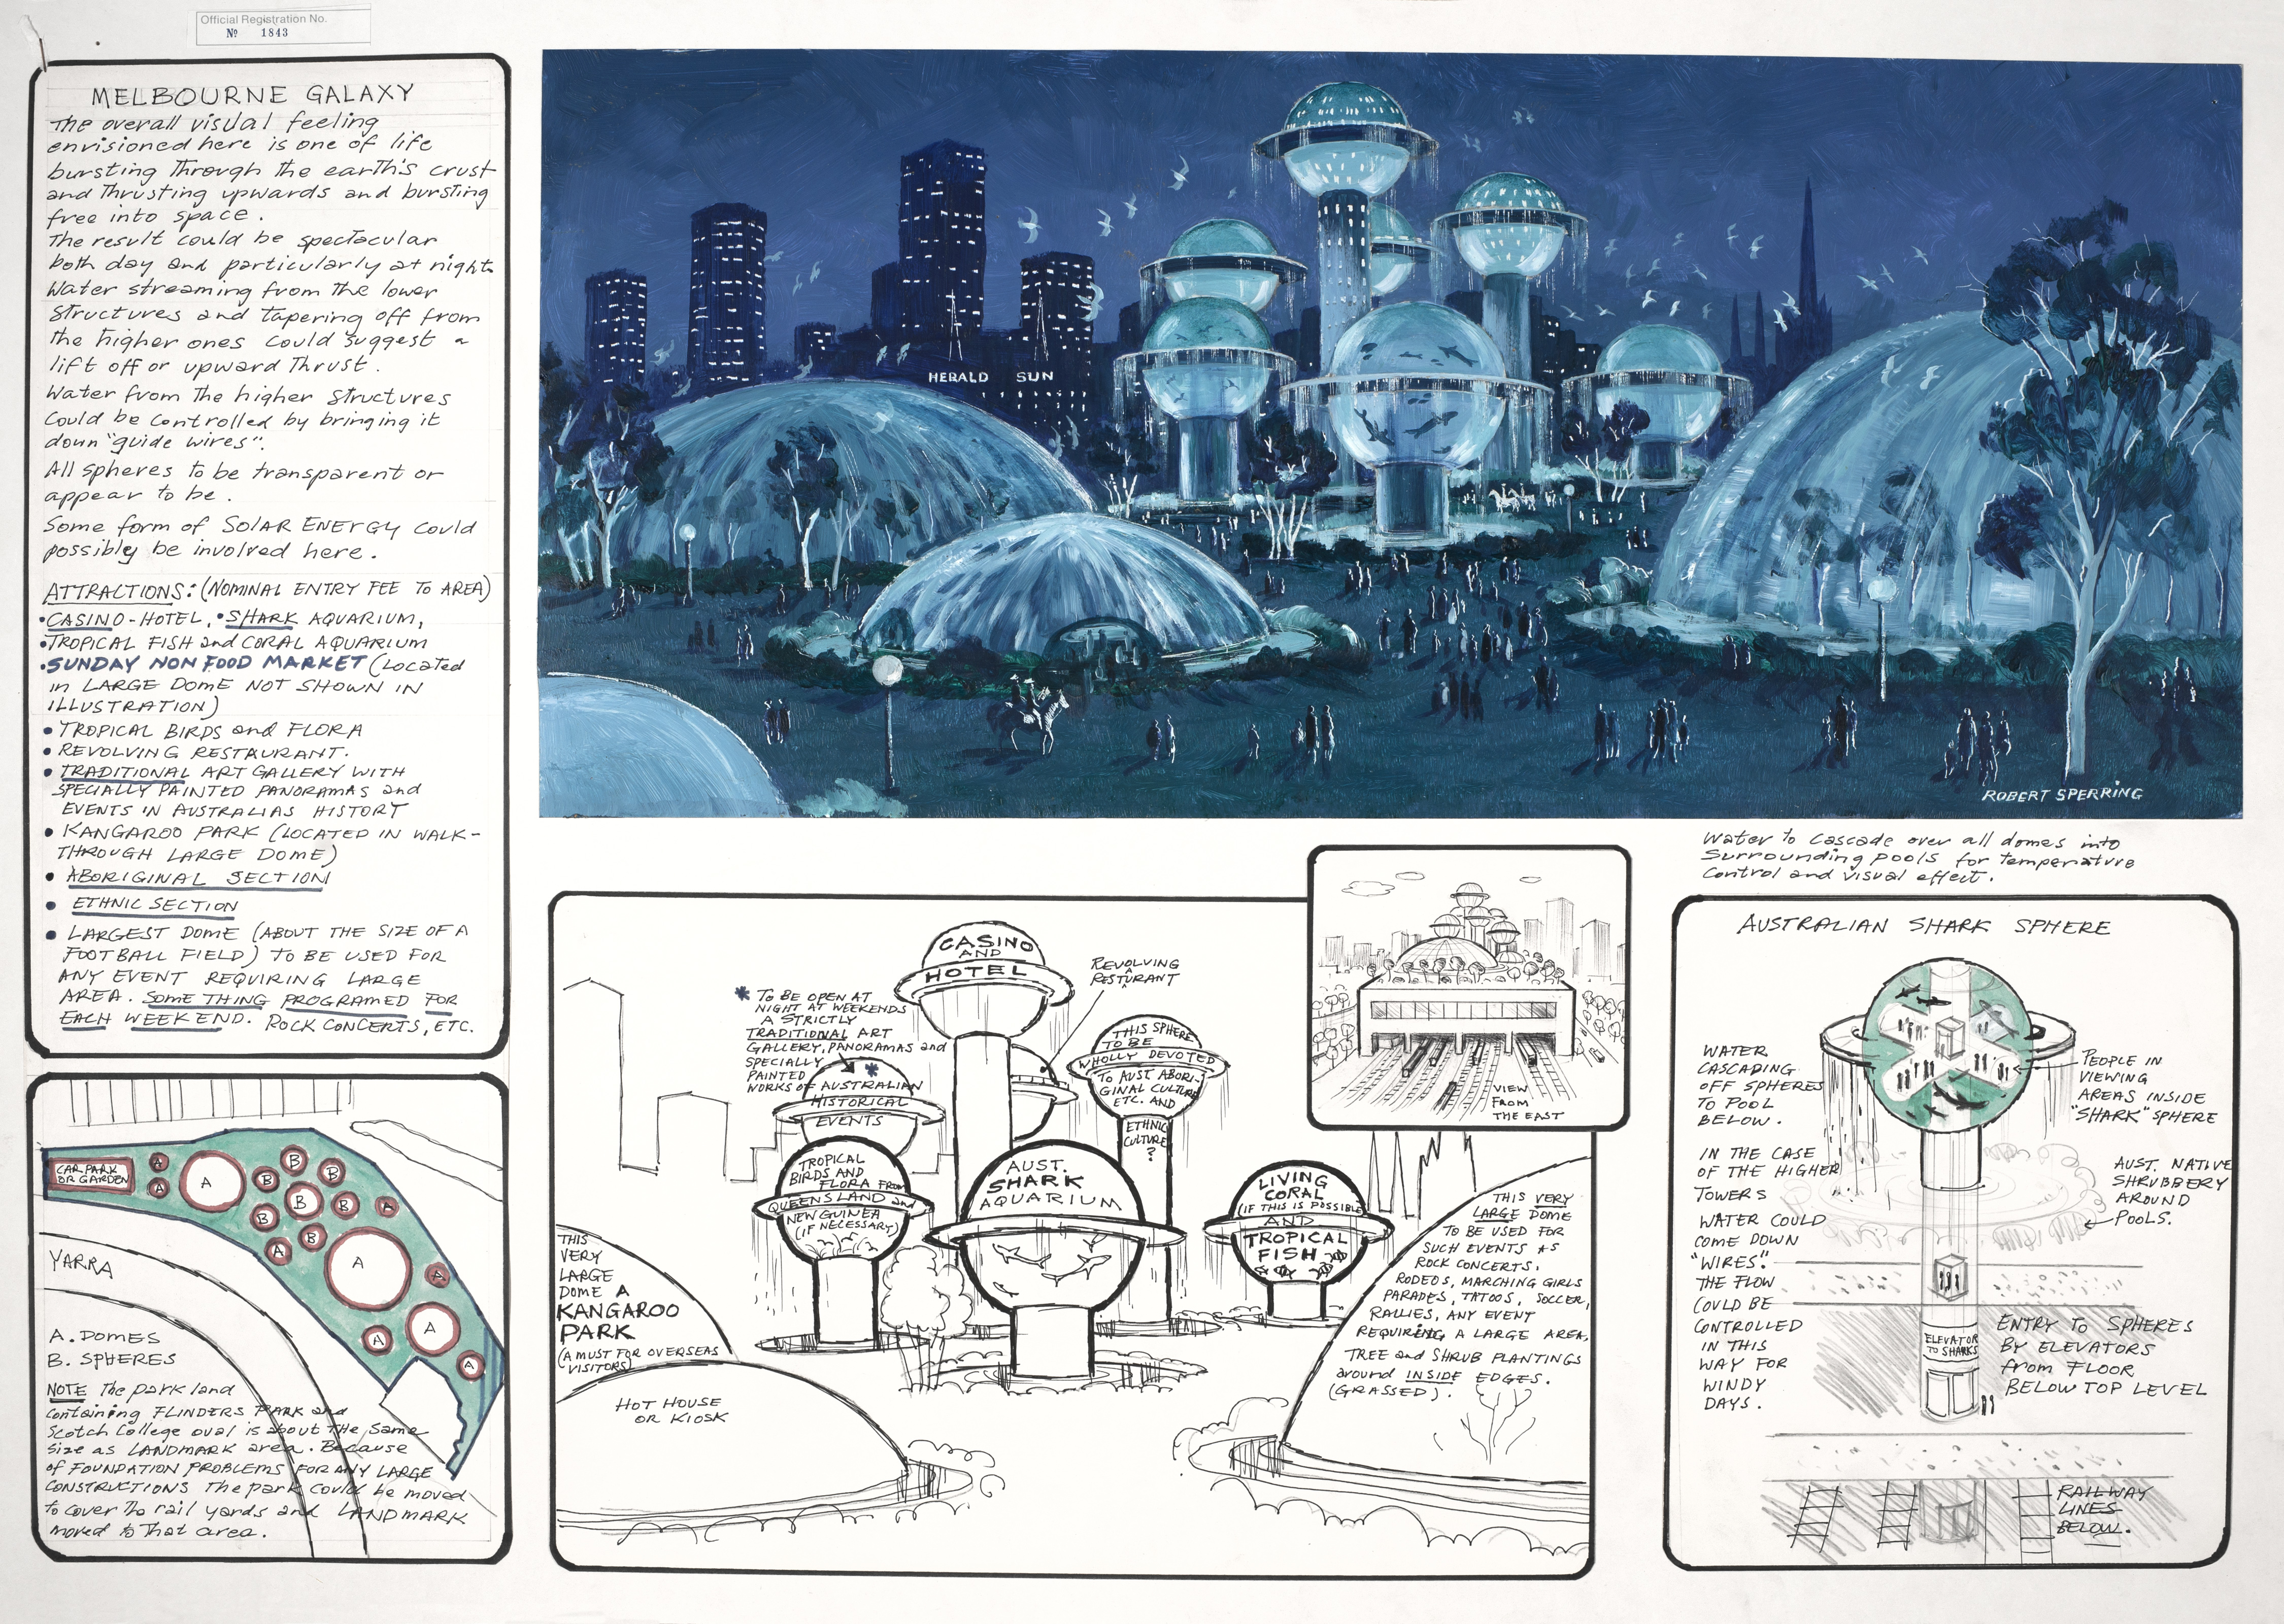 """Melbourne Galaxy"" design from the Landmark Competition Drawings"